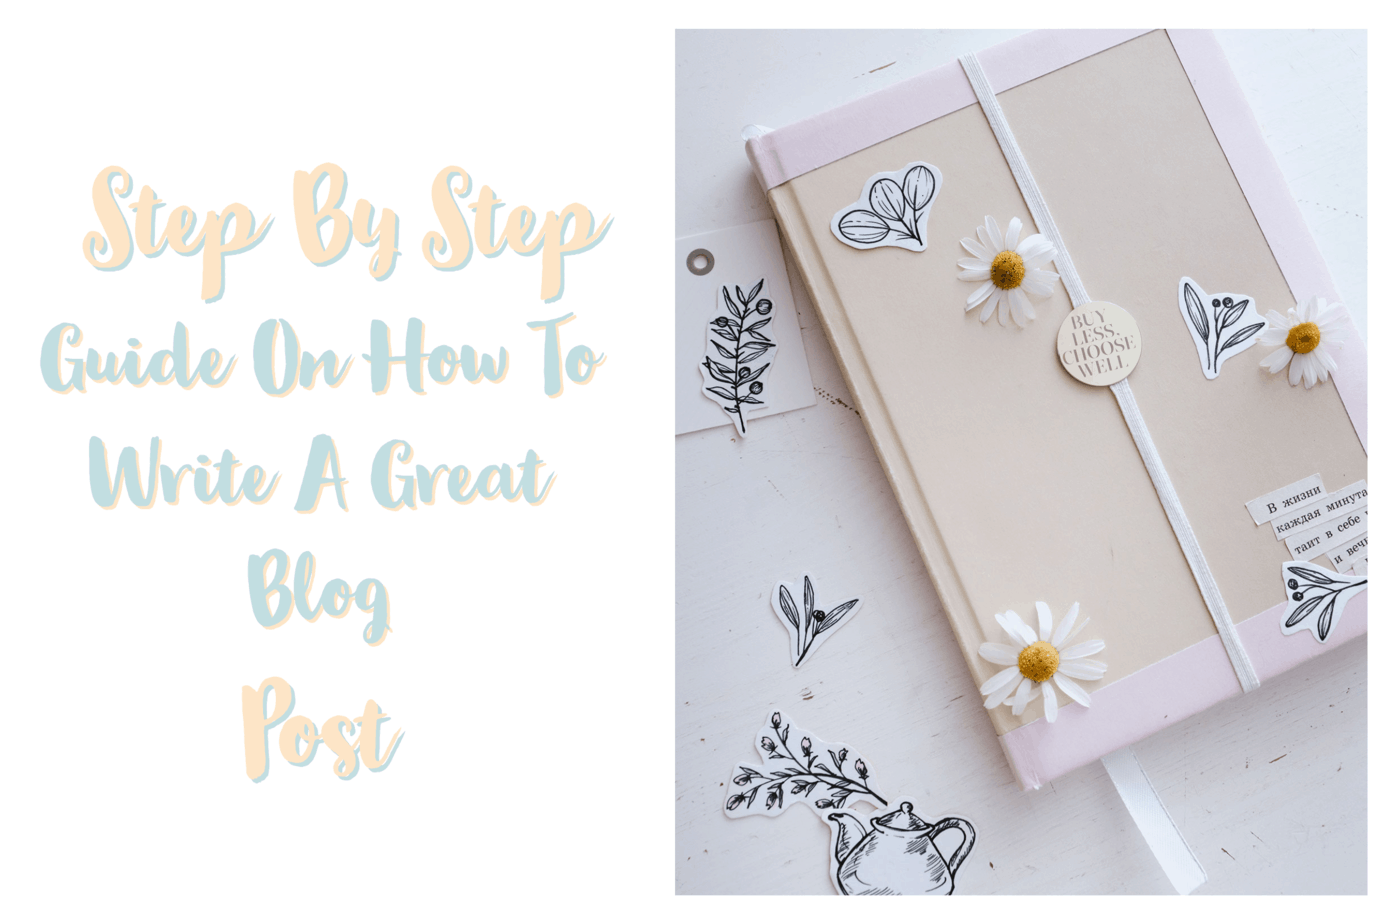 Step by Step Guide On How To Write A Great Blog Post